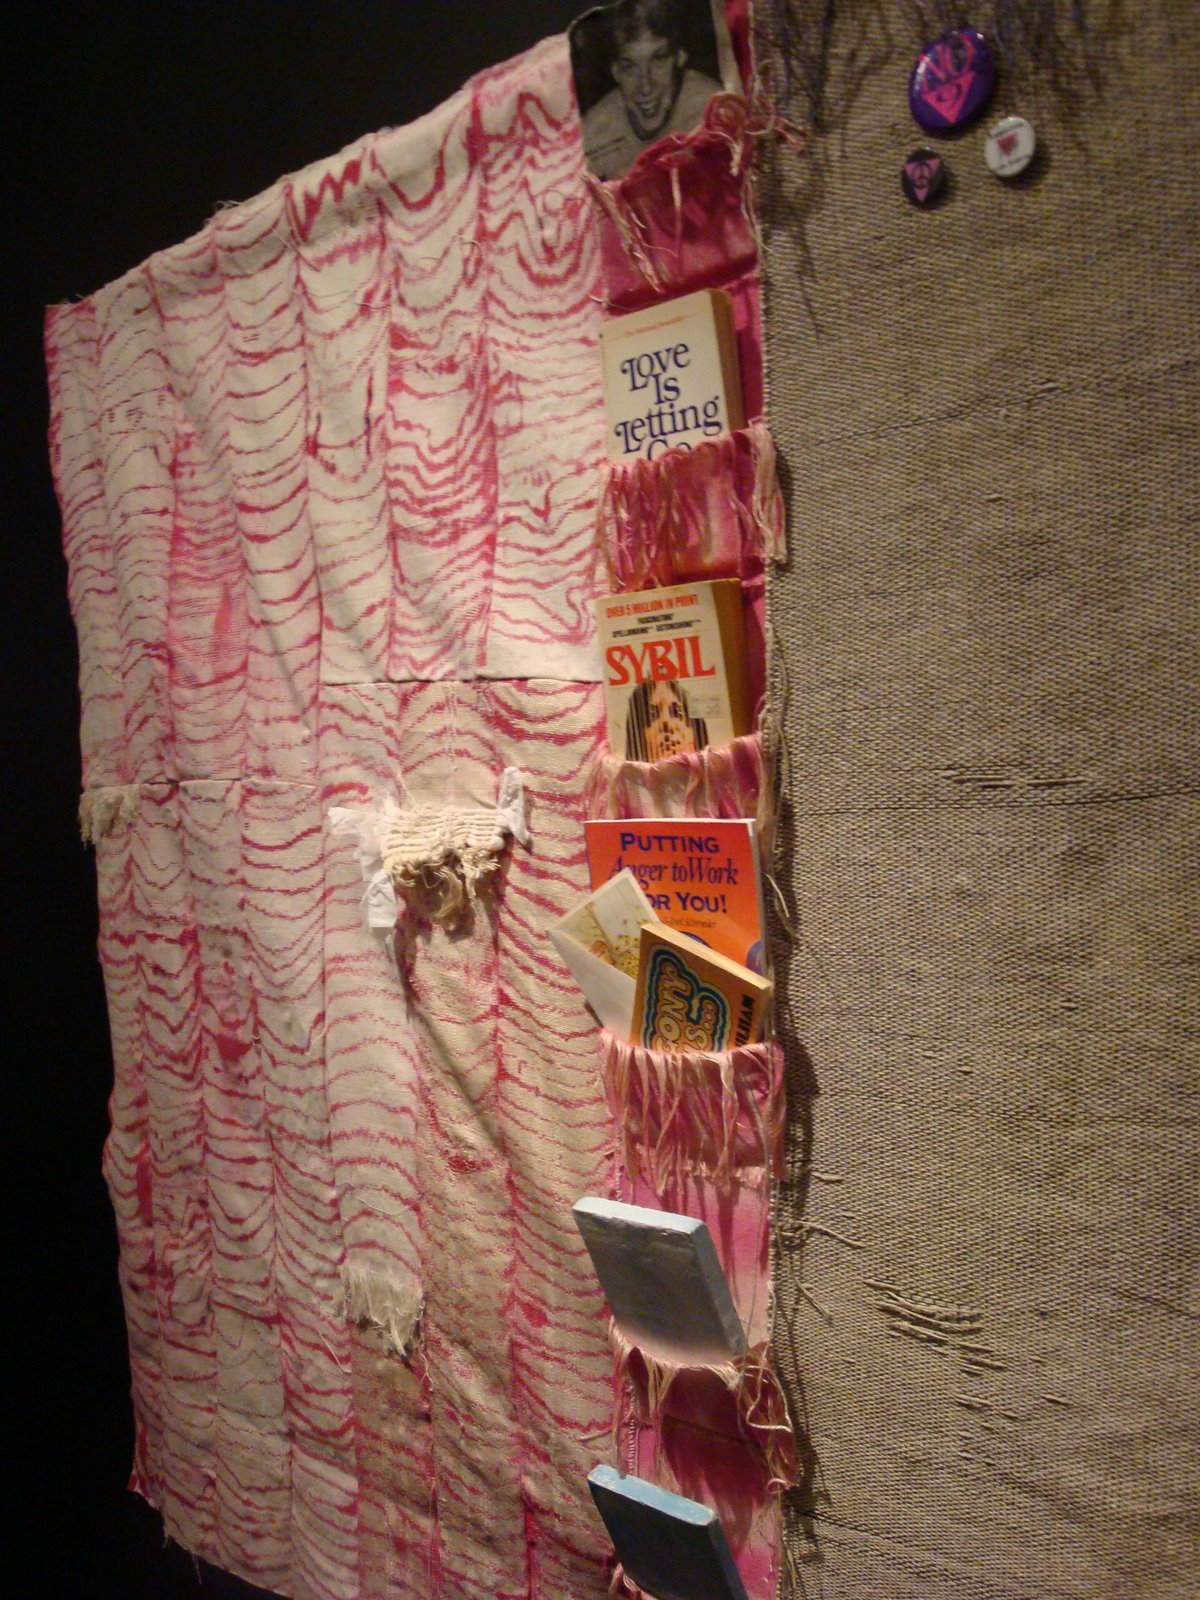 Josh Faught's Triage, mixed media of canvas hemp, books, stitched and hung  together.